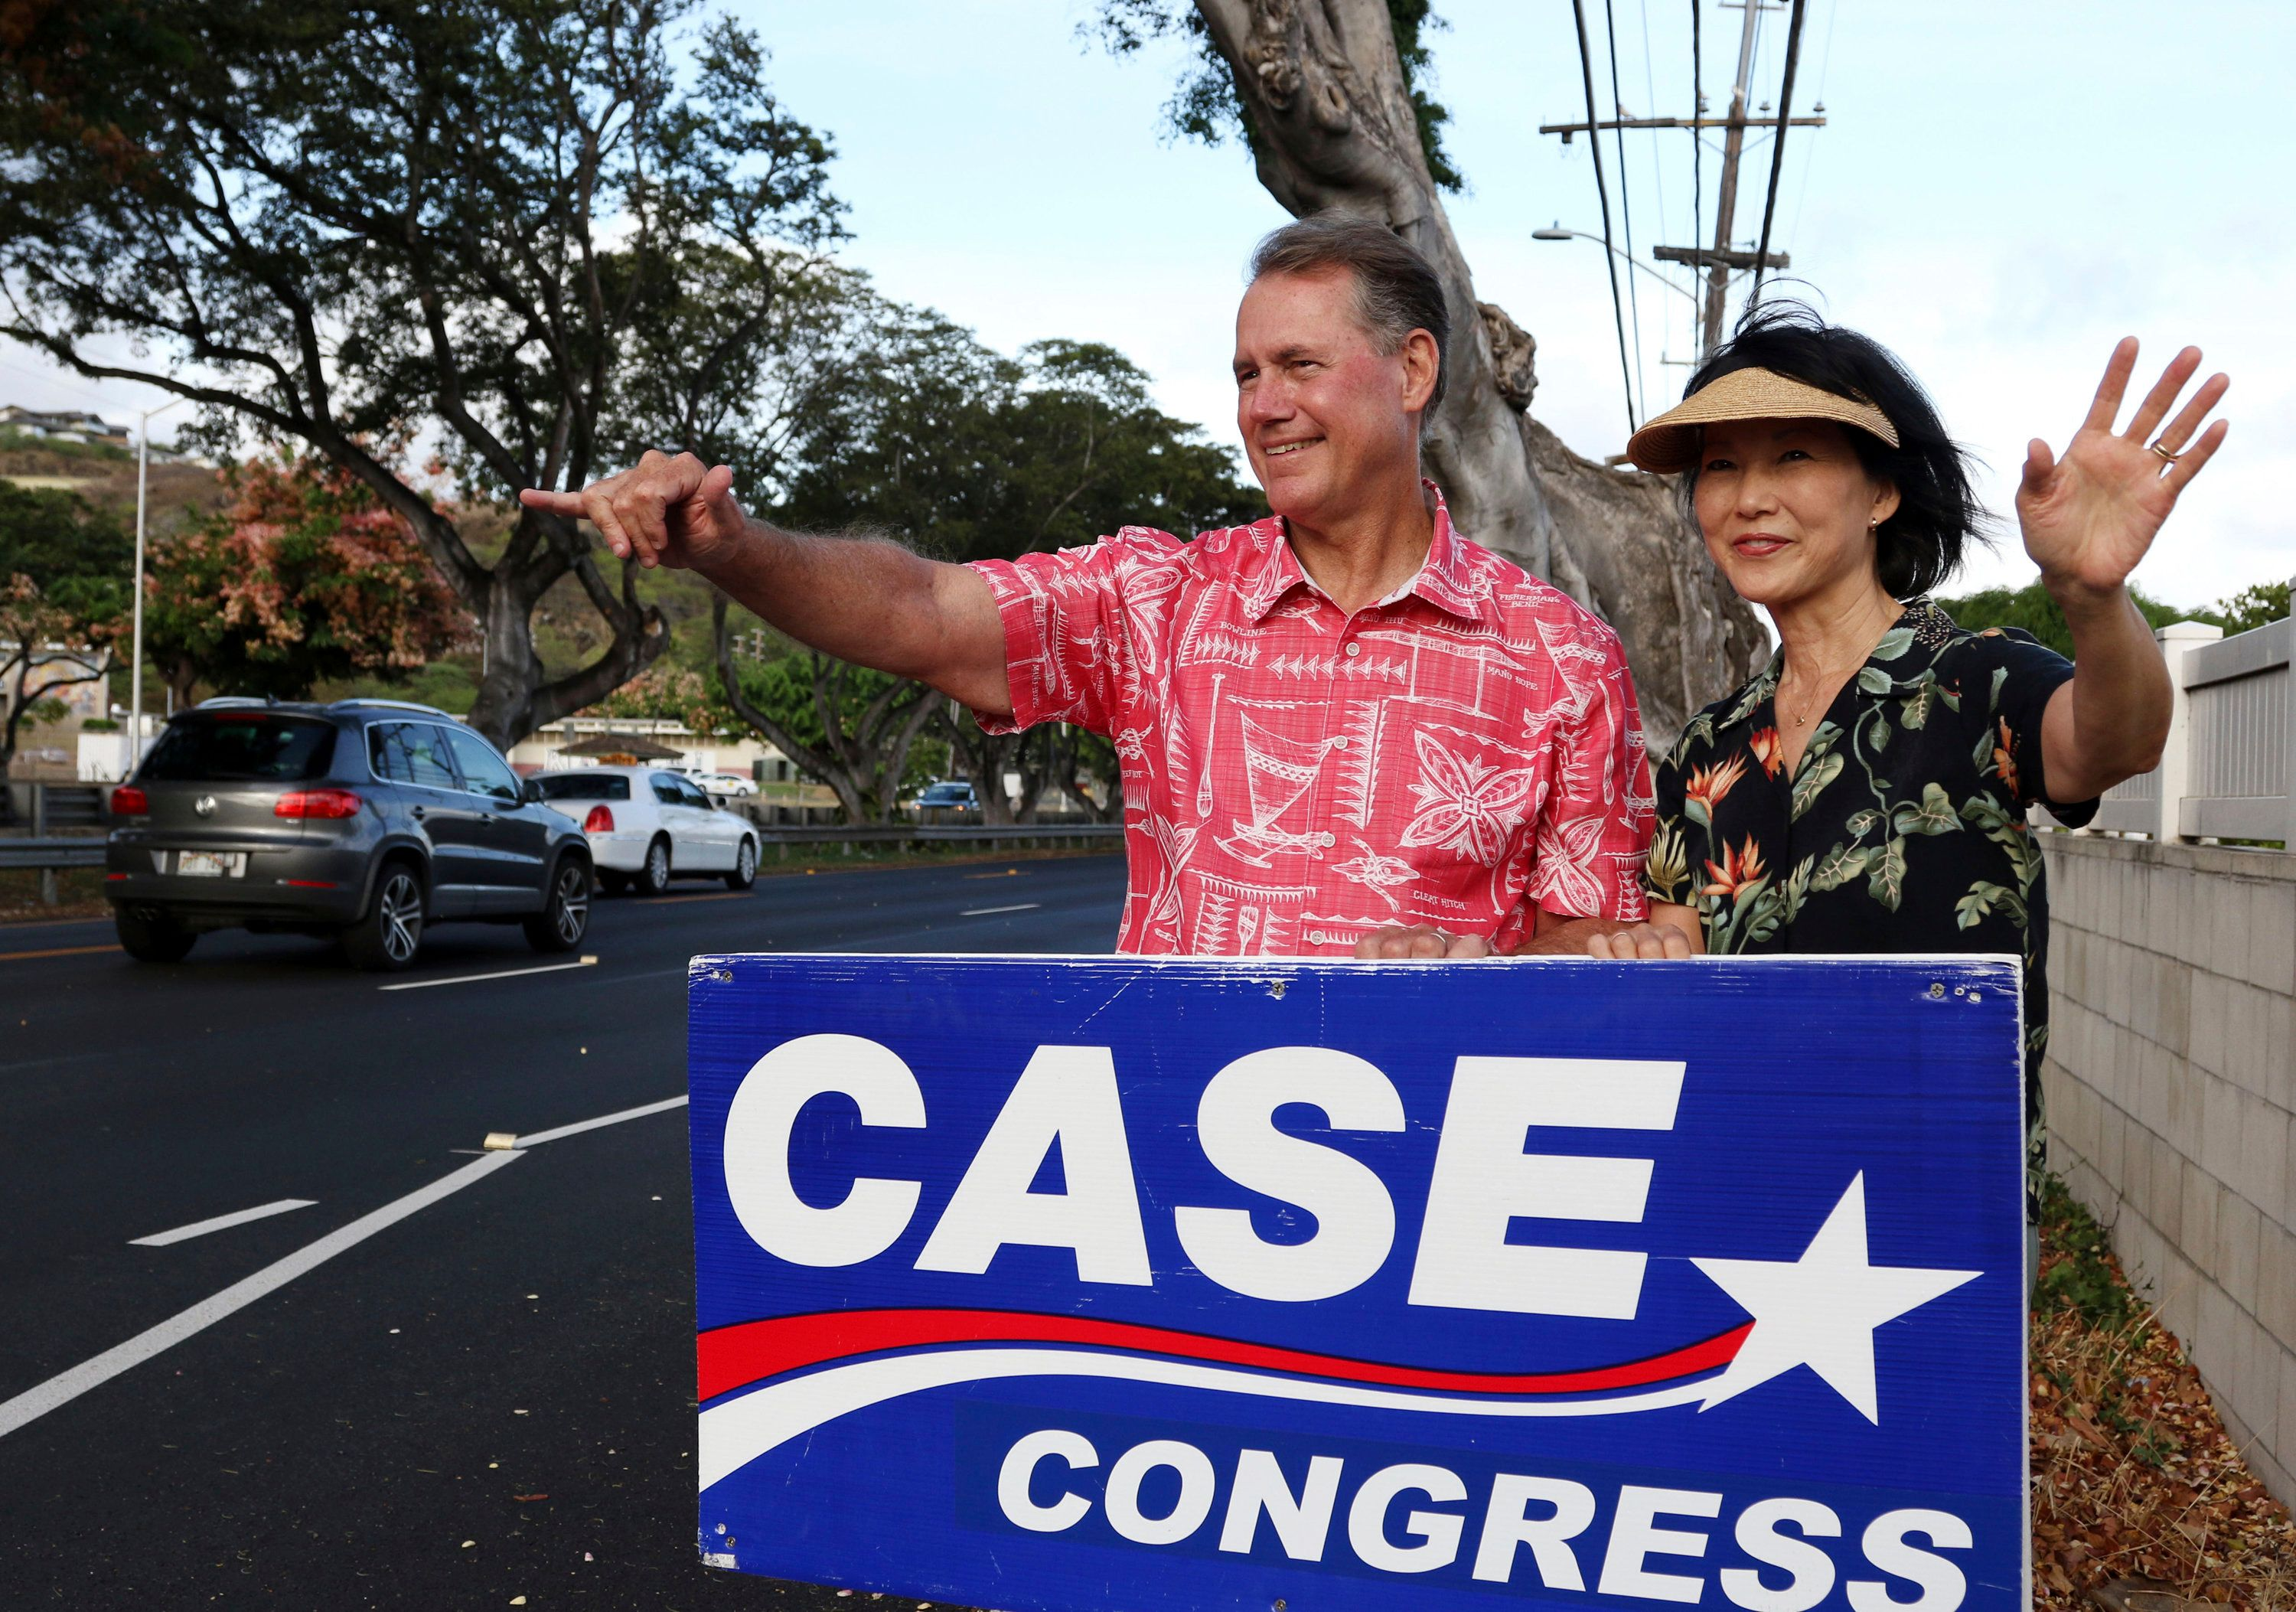 In this July 24, 2018, photo, U.S. House candidate Ed Case and his wife, Audrey Case, greet evening commuters while campaigning in Honolulu. The seat representing Honolulu in the U.S. Congress is open for anyone's taking, as incumbent U.S. Rep. Colleen Hanabusa runs for governor instead of re-election. (AP Photo/Audrey McAvoy)